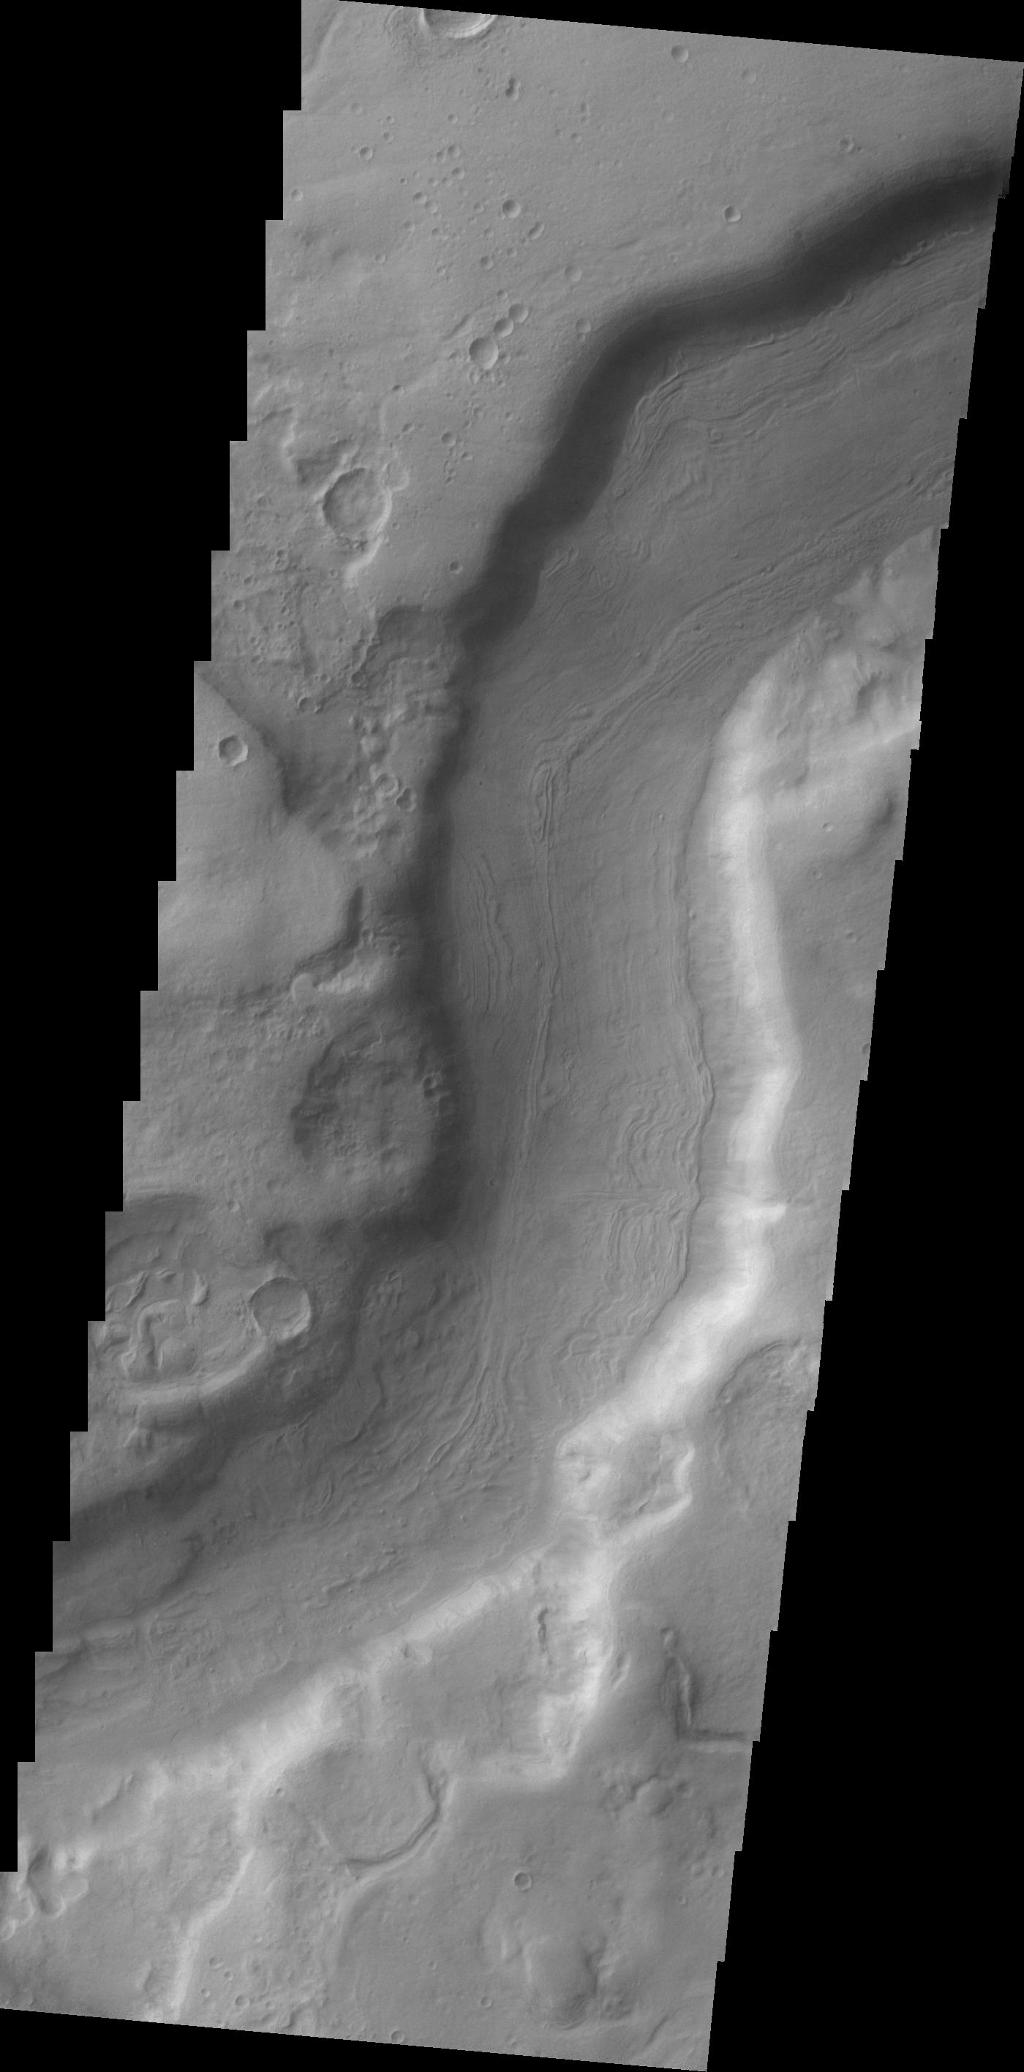 A small section of Dao Vallis in shown in this VIS image. Dao Vallis is a major channel that drains into Hellas Planitia